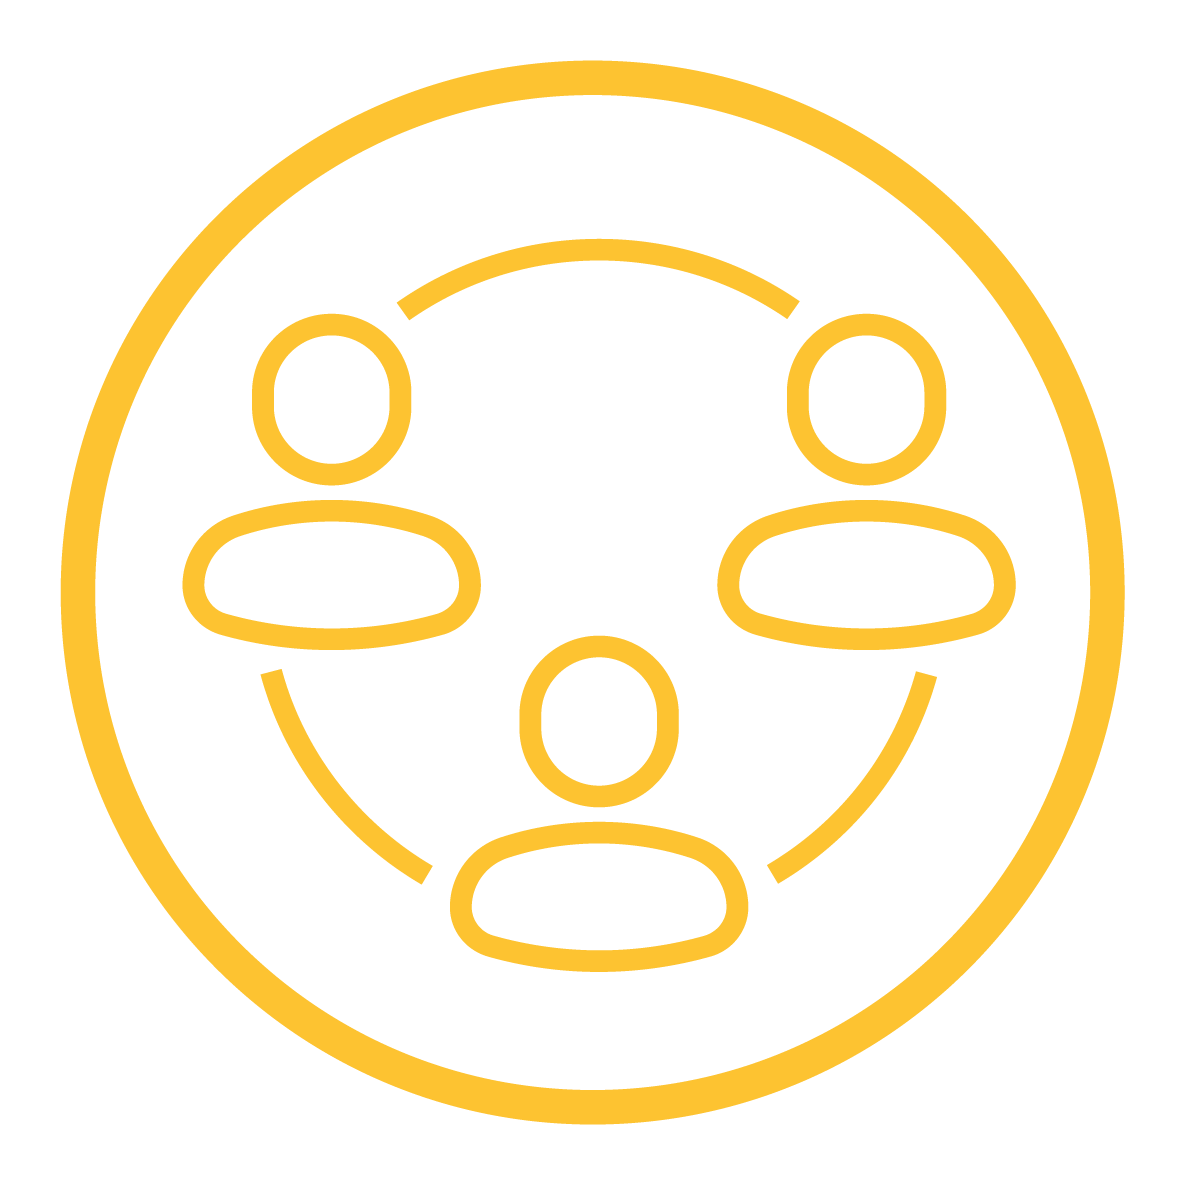 Wellbeing Yellow Icon